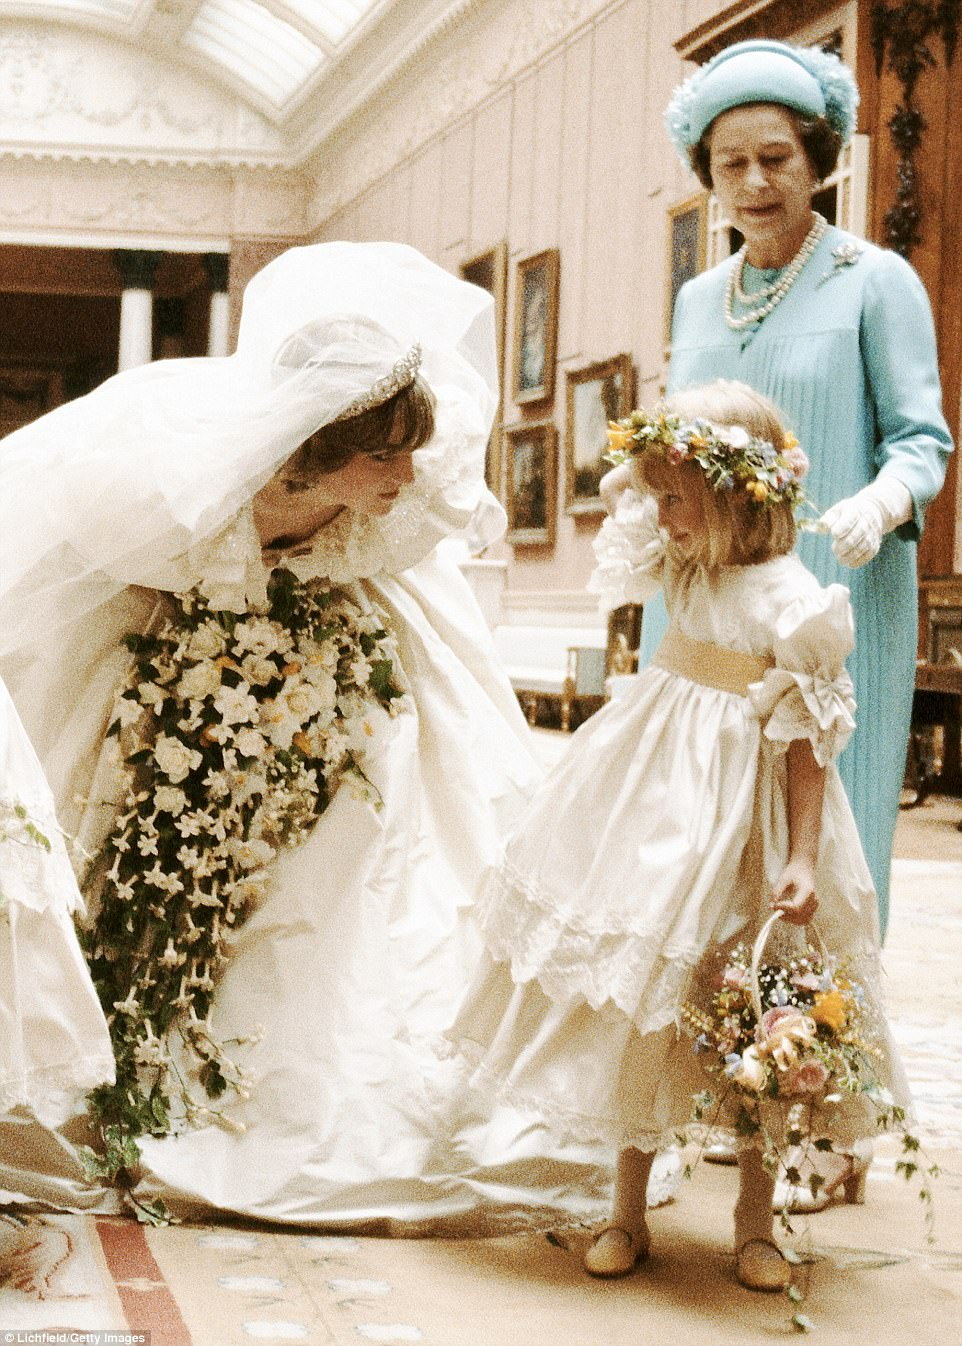 Don't be nervous: Diana chats to five-year-old bridesmaid Clementine Hambro under the watchful eye of the Queen